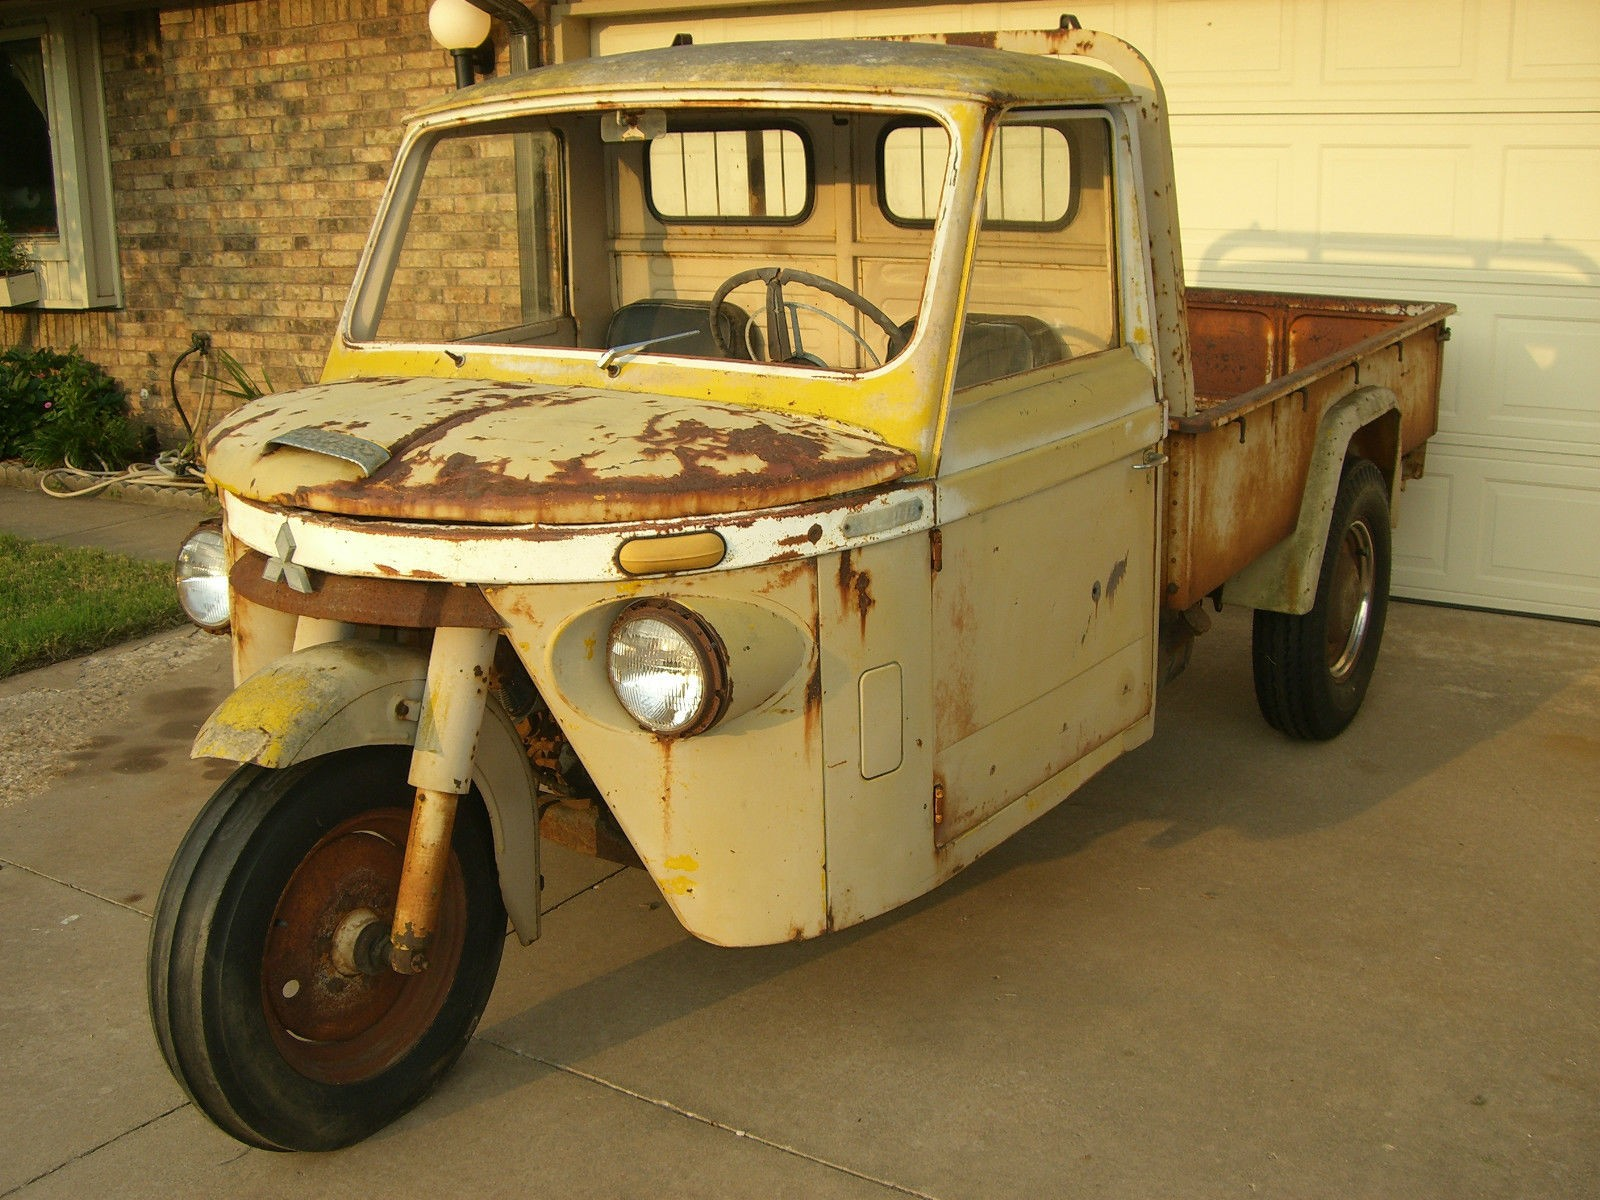 Here S An Old Mitsubishi Three Wheeler To Go With The Trend